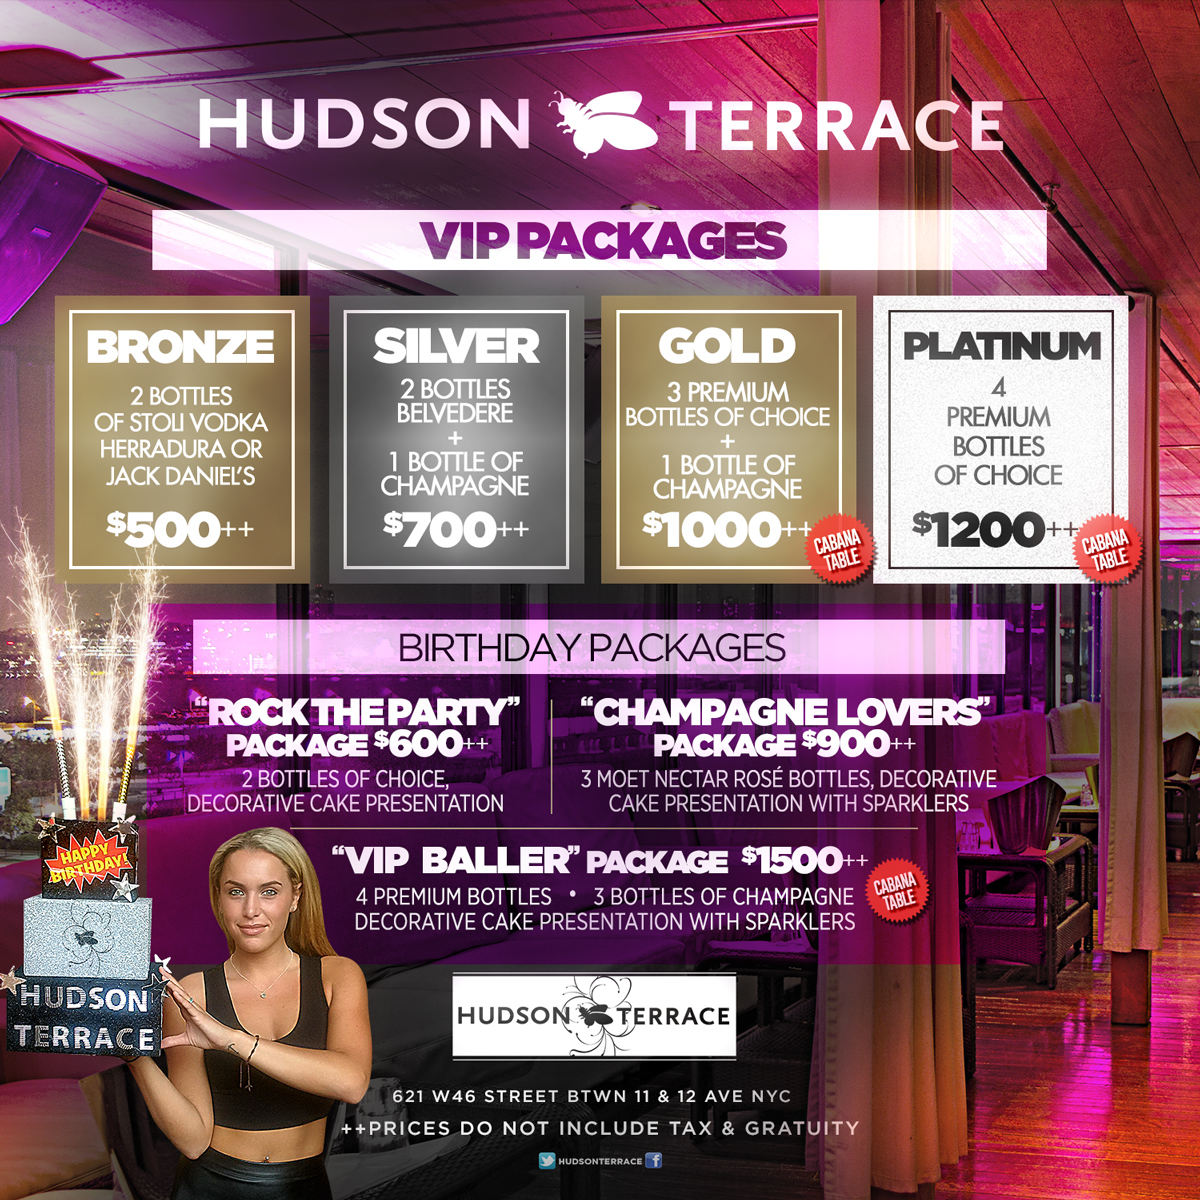 Hudson Terrace Bottle Service Packages, VIP Packages, Birthday Specials, Hudson Terrace Host, Hudson Terrace Promoter